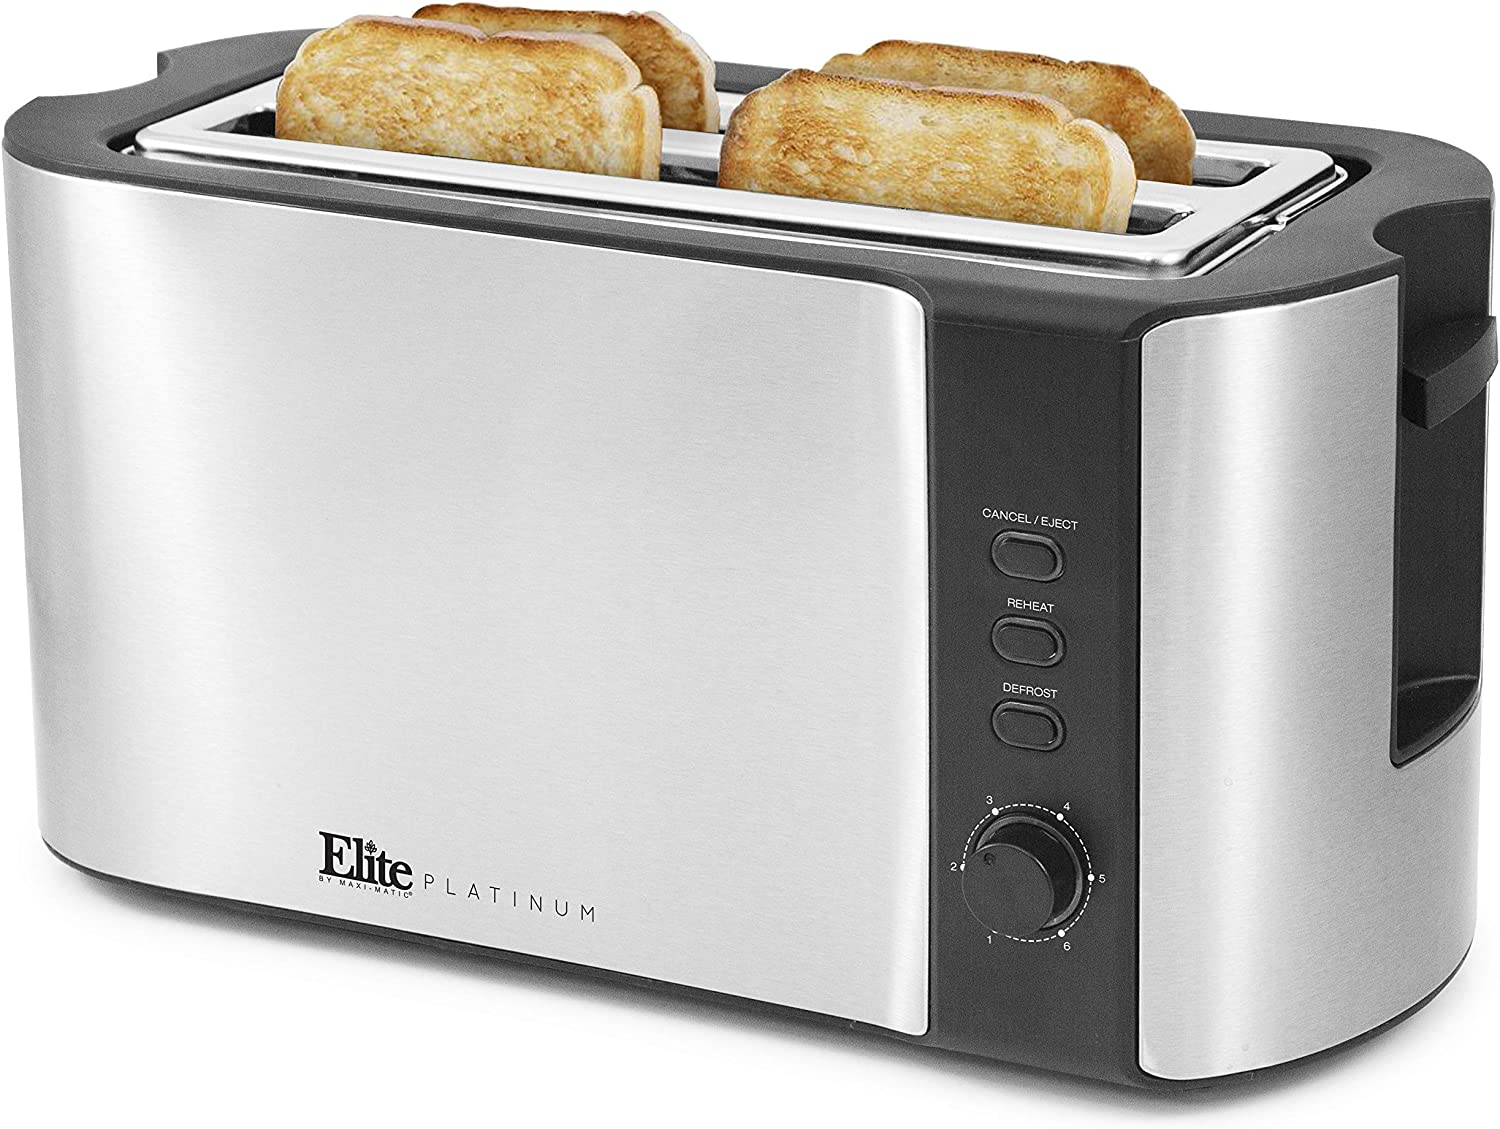 Elite Platinum ECT-3100 Stainless Steel Long Slot Toaster, Bagels, Specialty Breads Reheat, Cancel & Defrost Settings, 4 Slice, 1300 Watts, Stainless Steel & Black (Renewed)